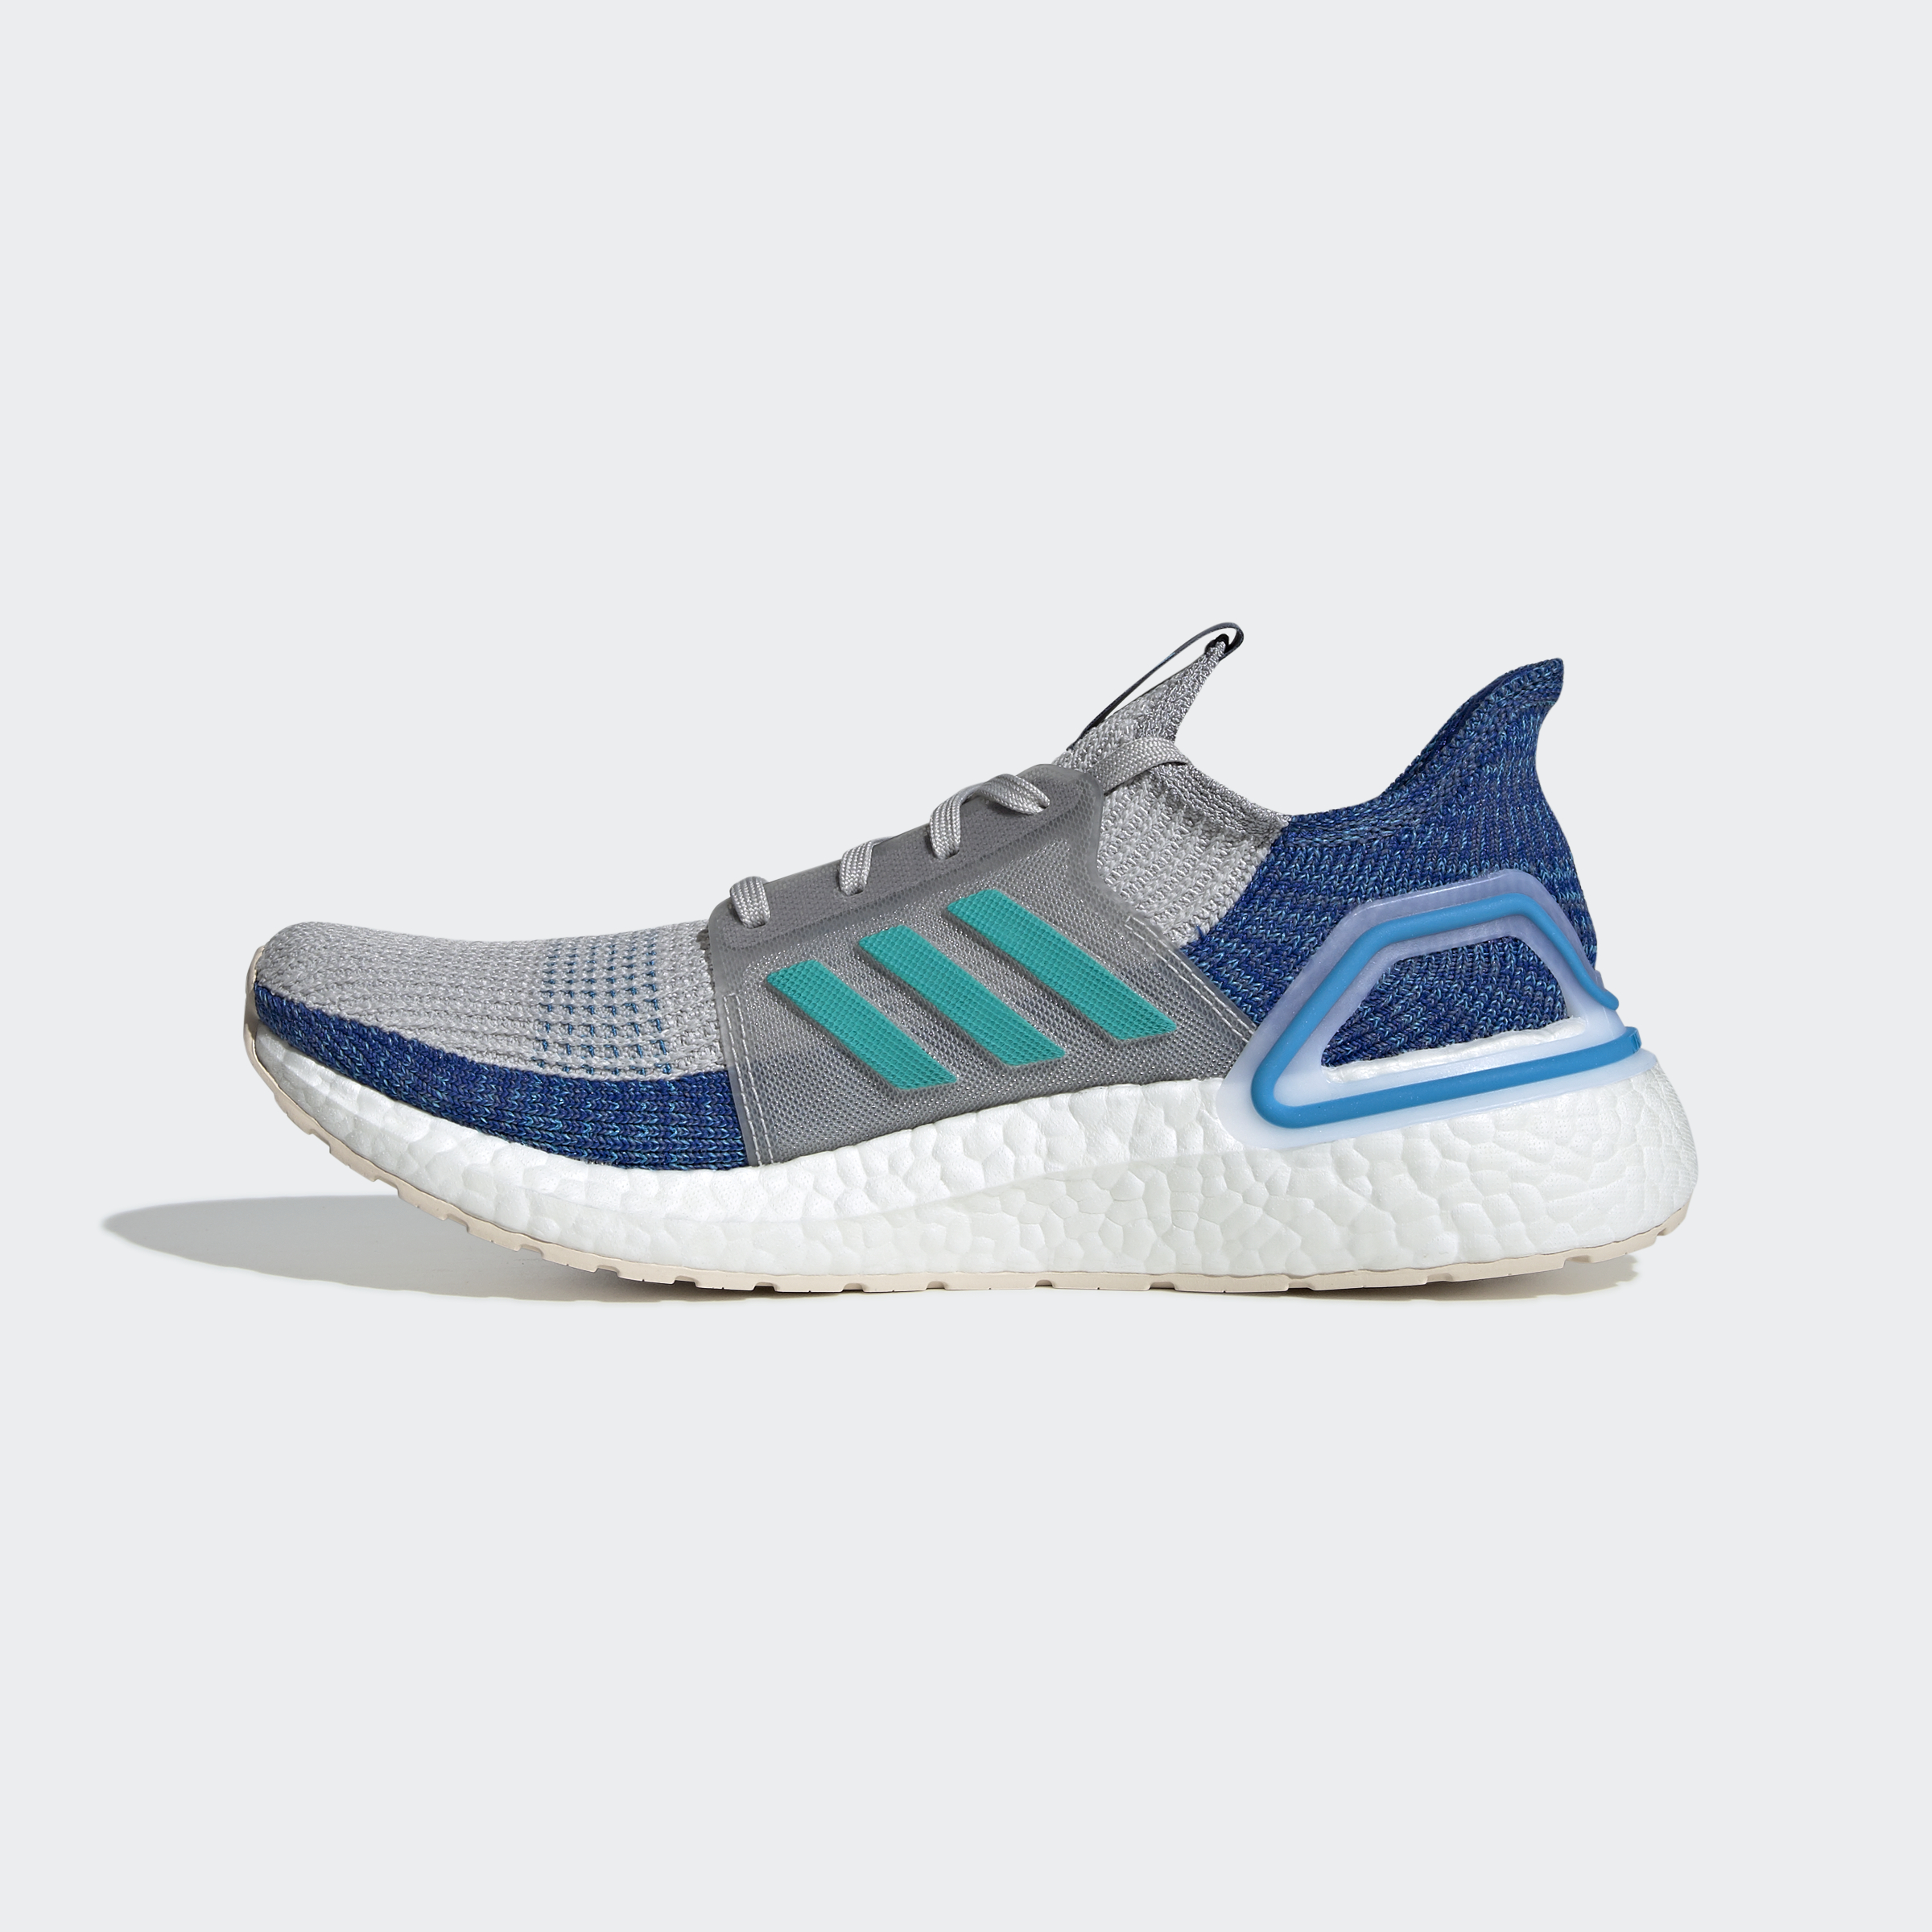 adidas-Ultraboost-19-Shoes-Athletic-amp-Sneakers thumbnail 31